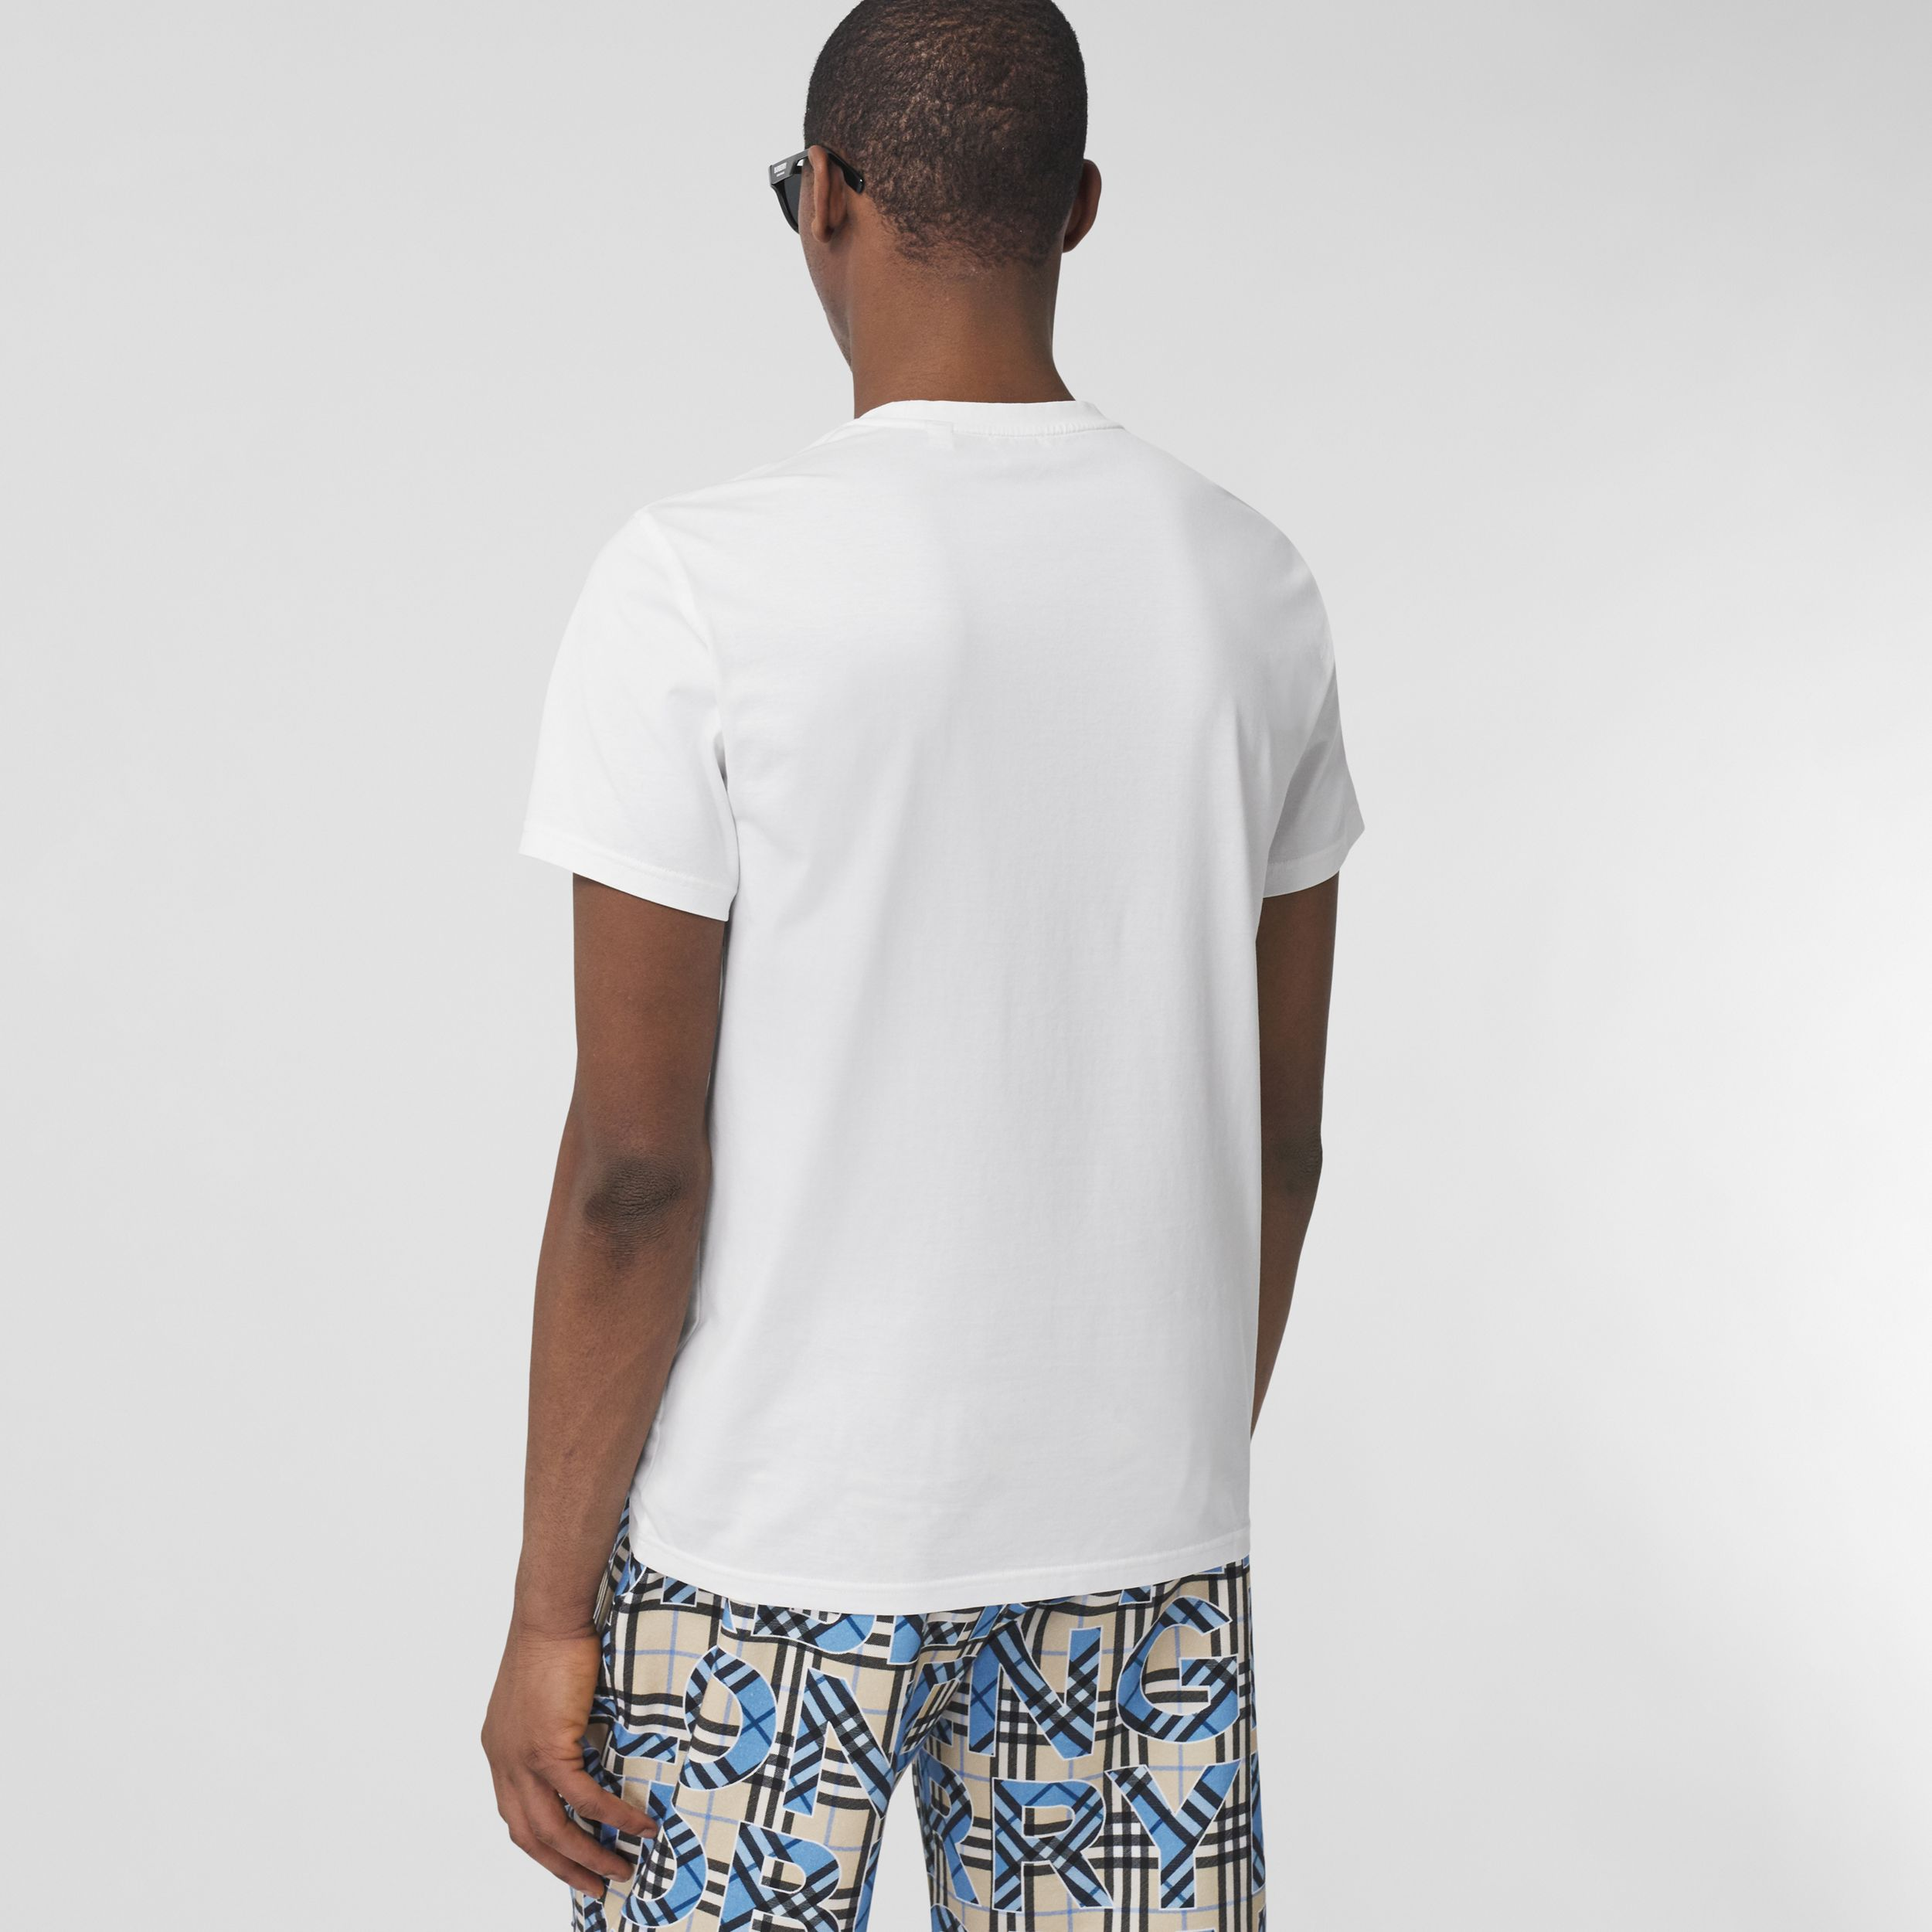 Monogram Motif Cotton T-shirt in White - Men | Burberry United Kingdom - 3